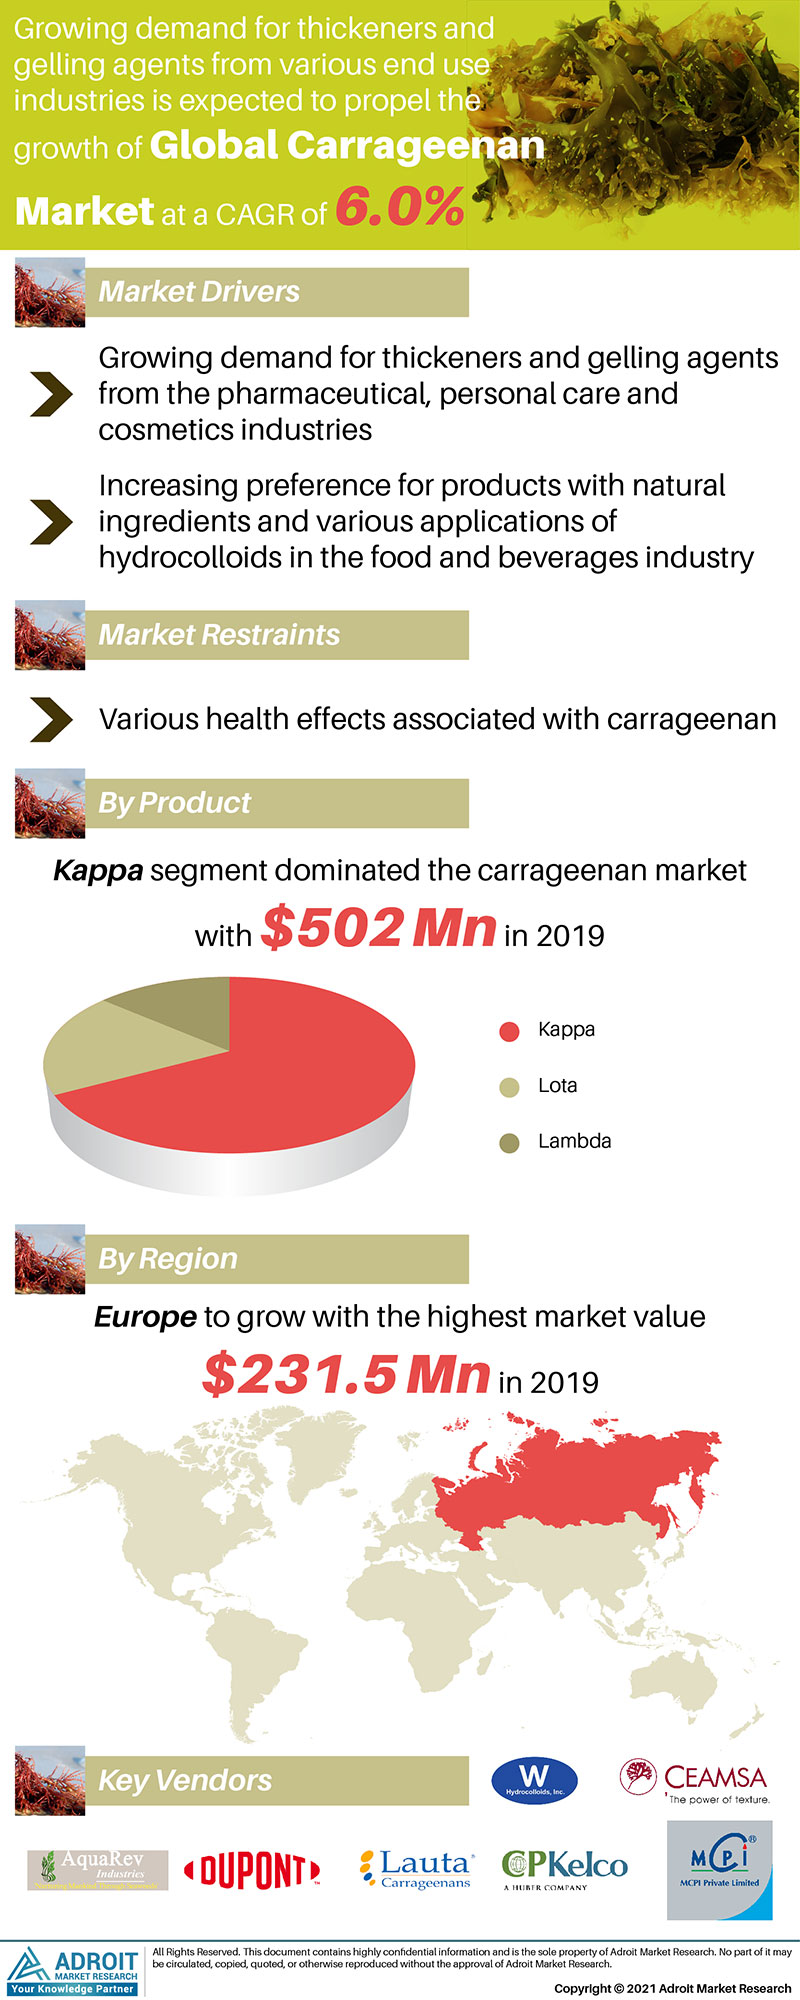 Carrageenan Market Size 2017 By Application, Product, Region and Forecast 2019 to 2025